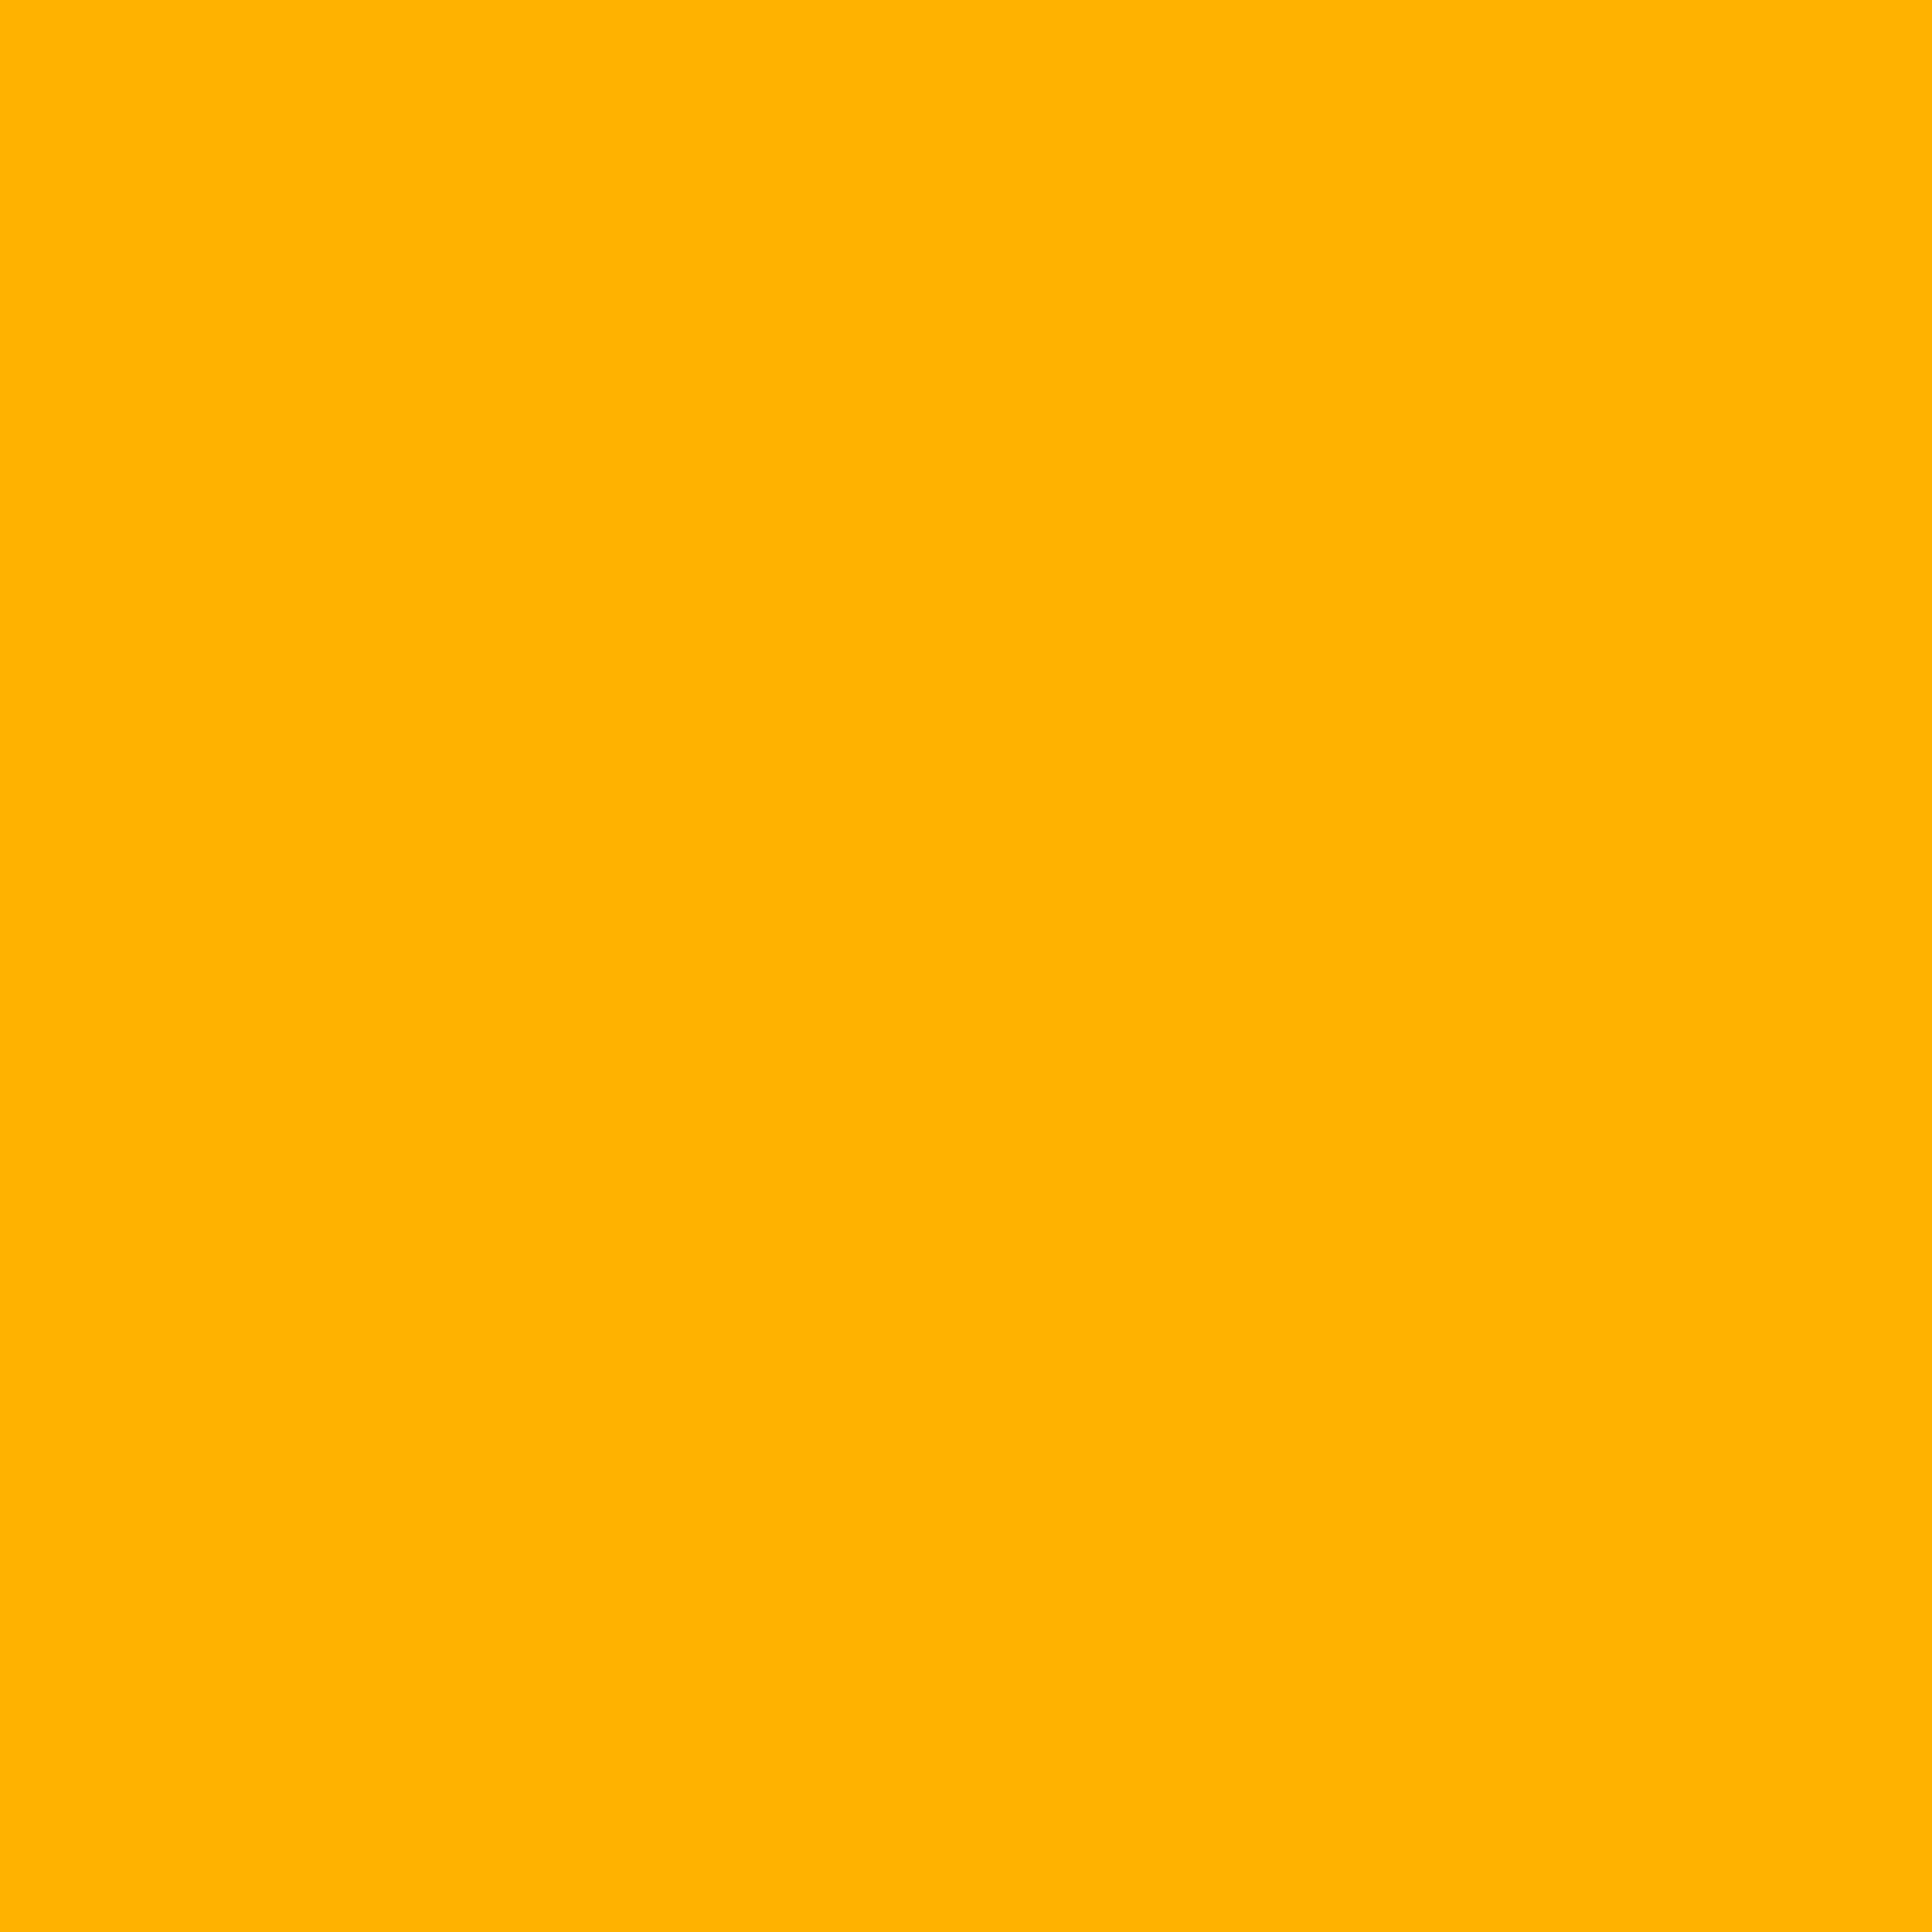 2048x2048 UCLA Gold Solid Color Background